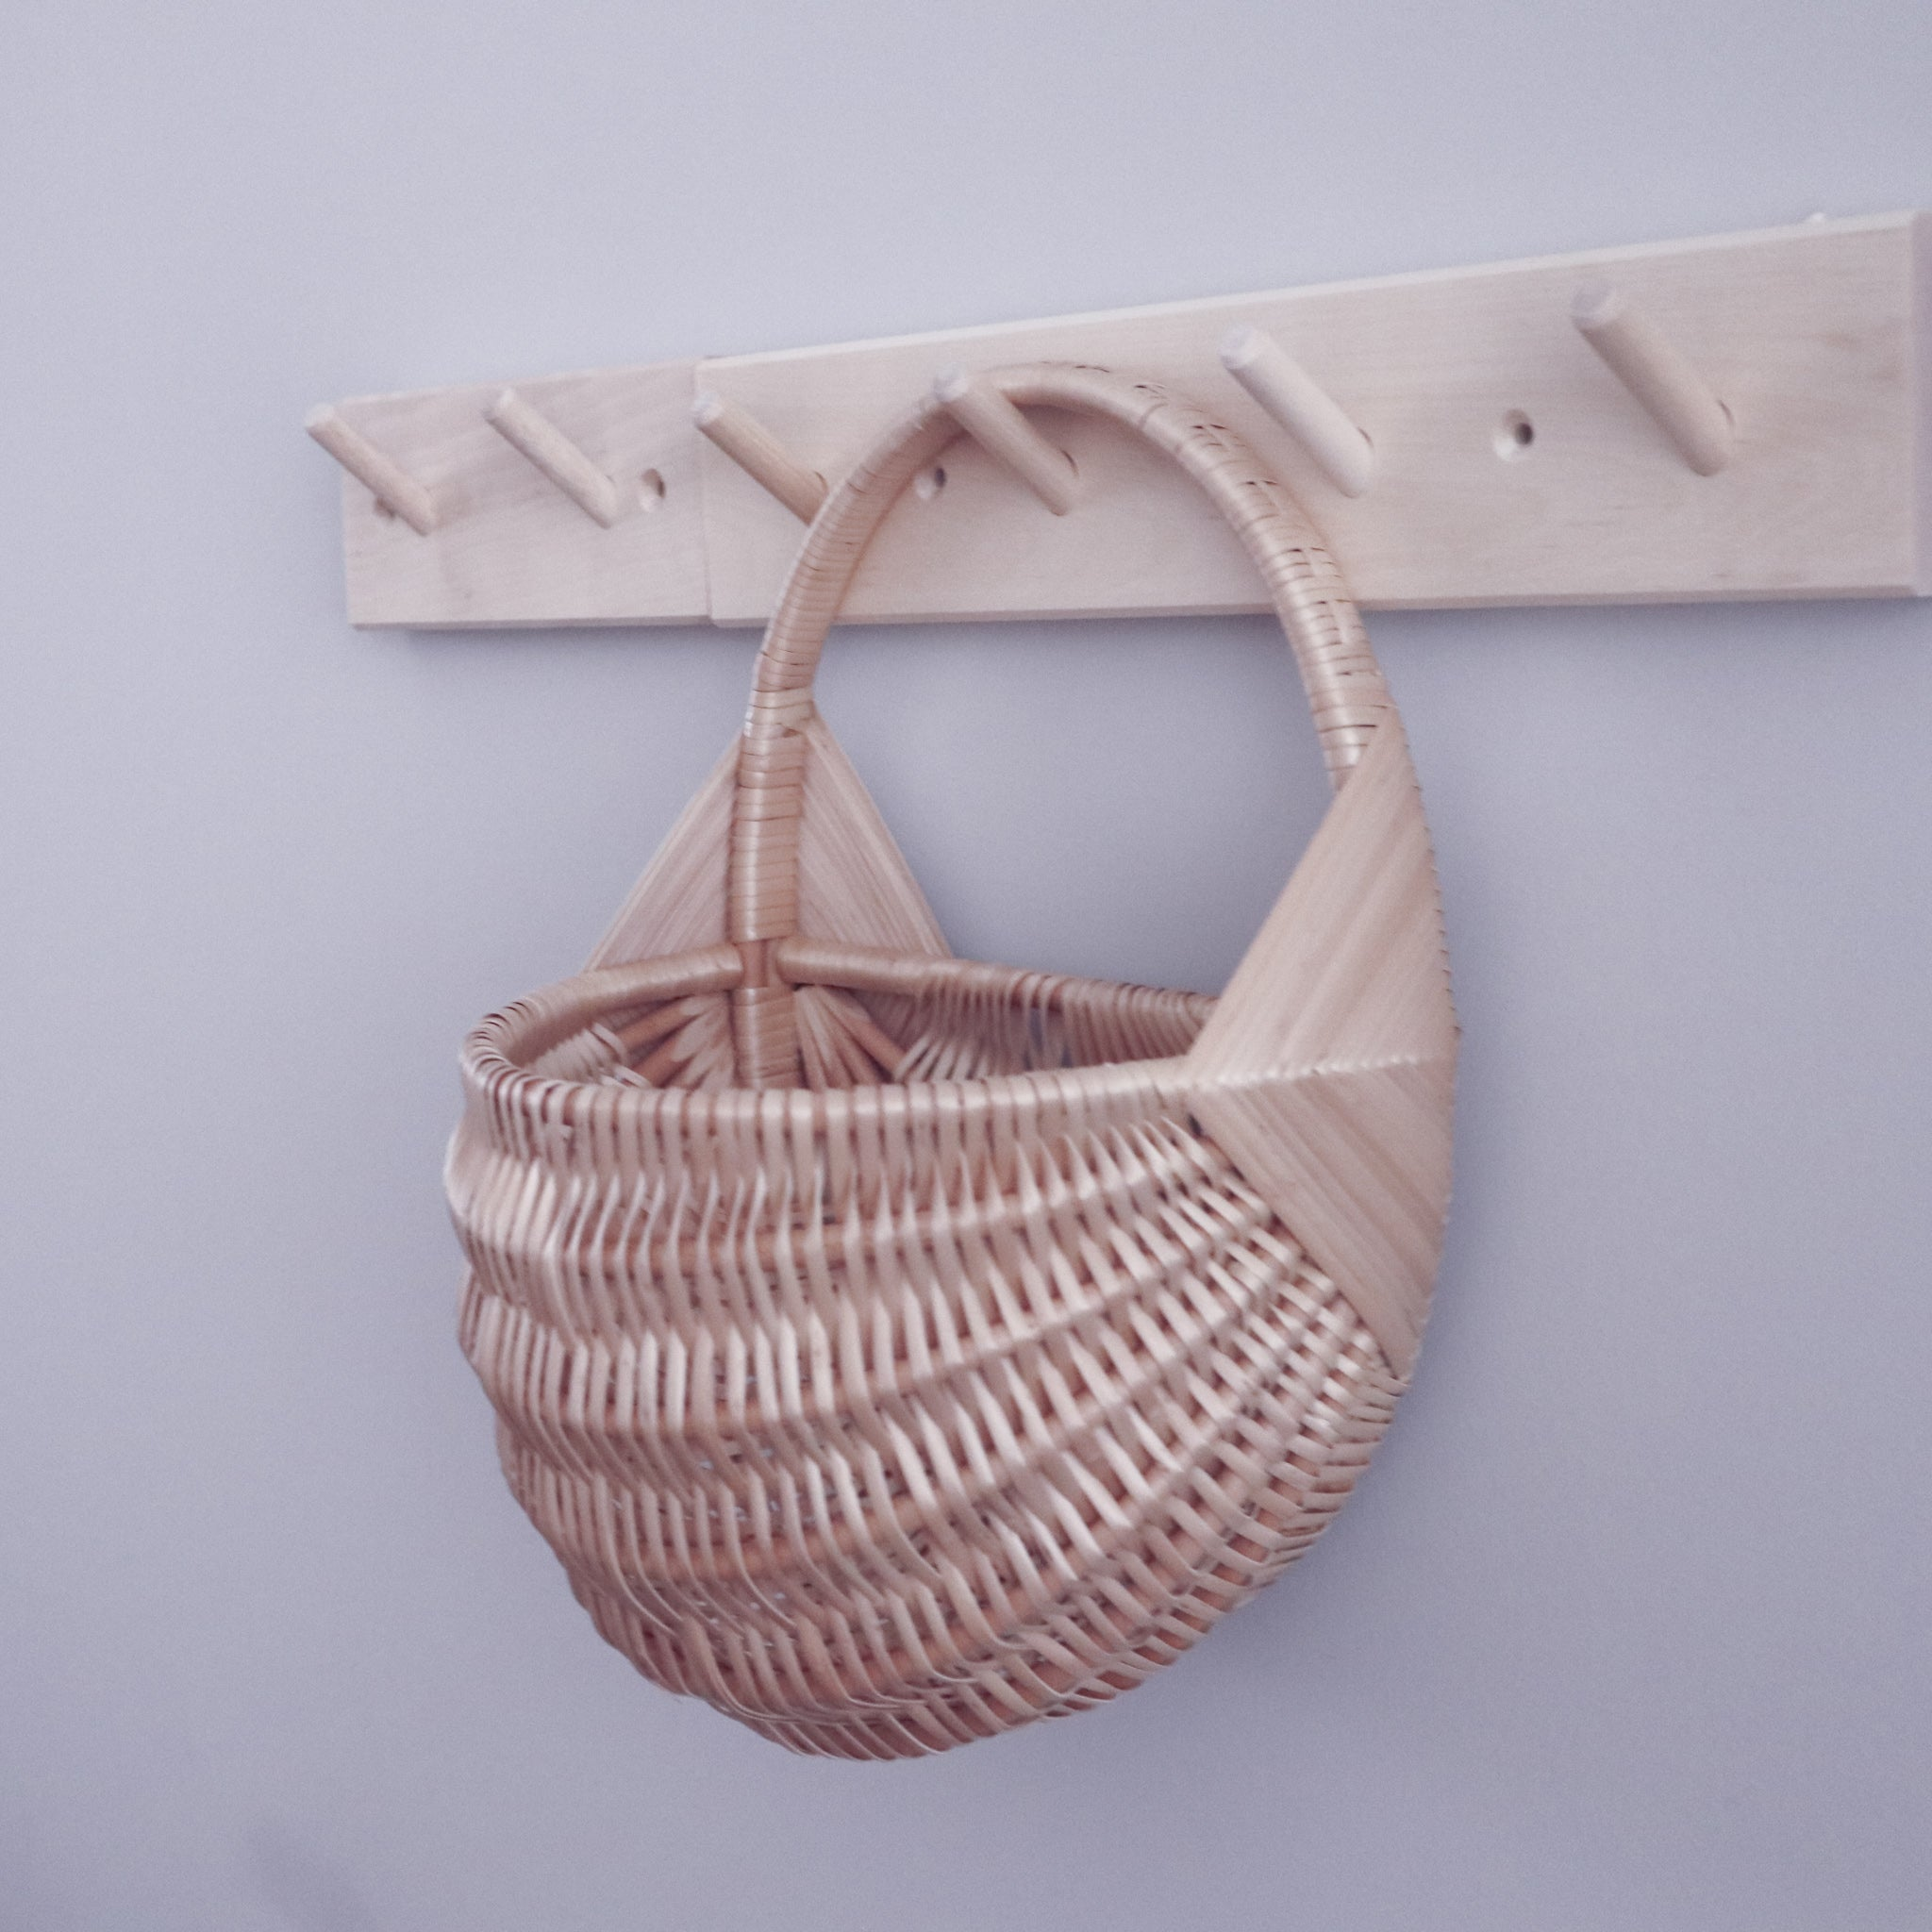 rattan wall basket in wall wooden hanger